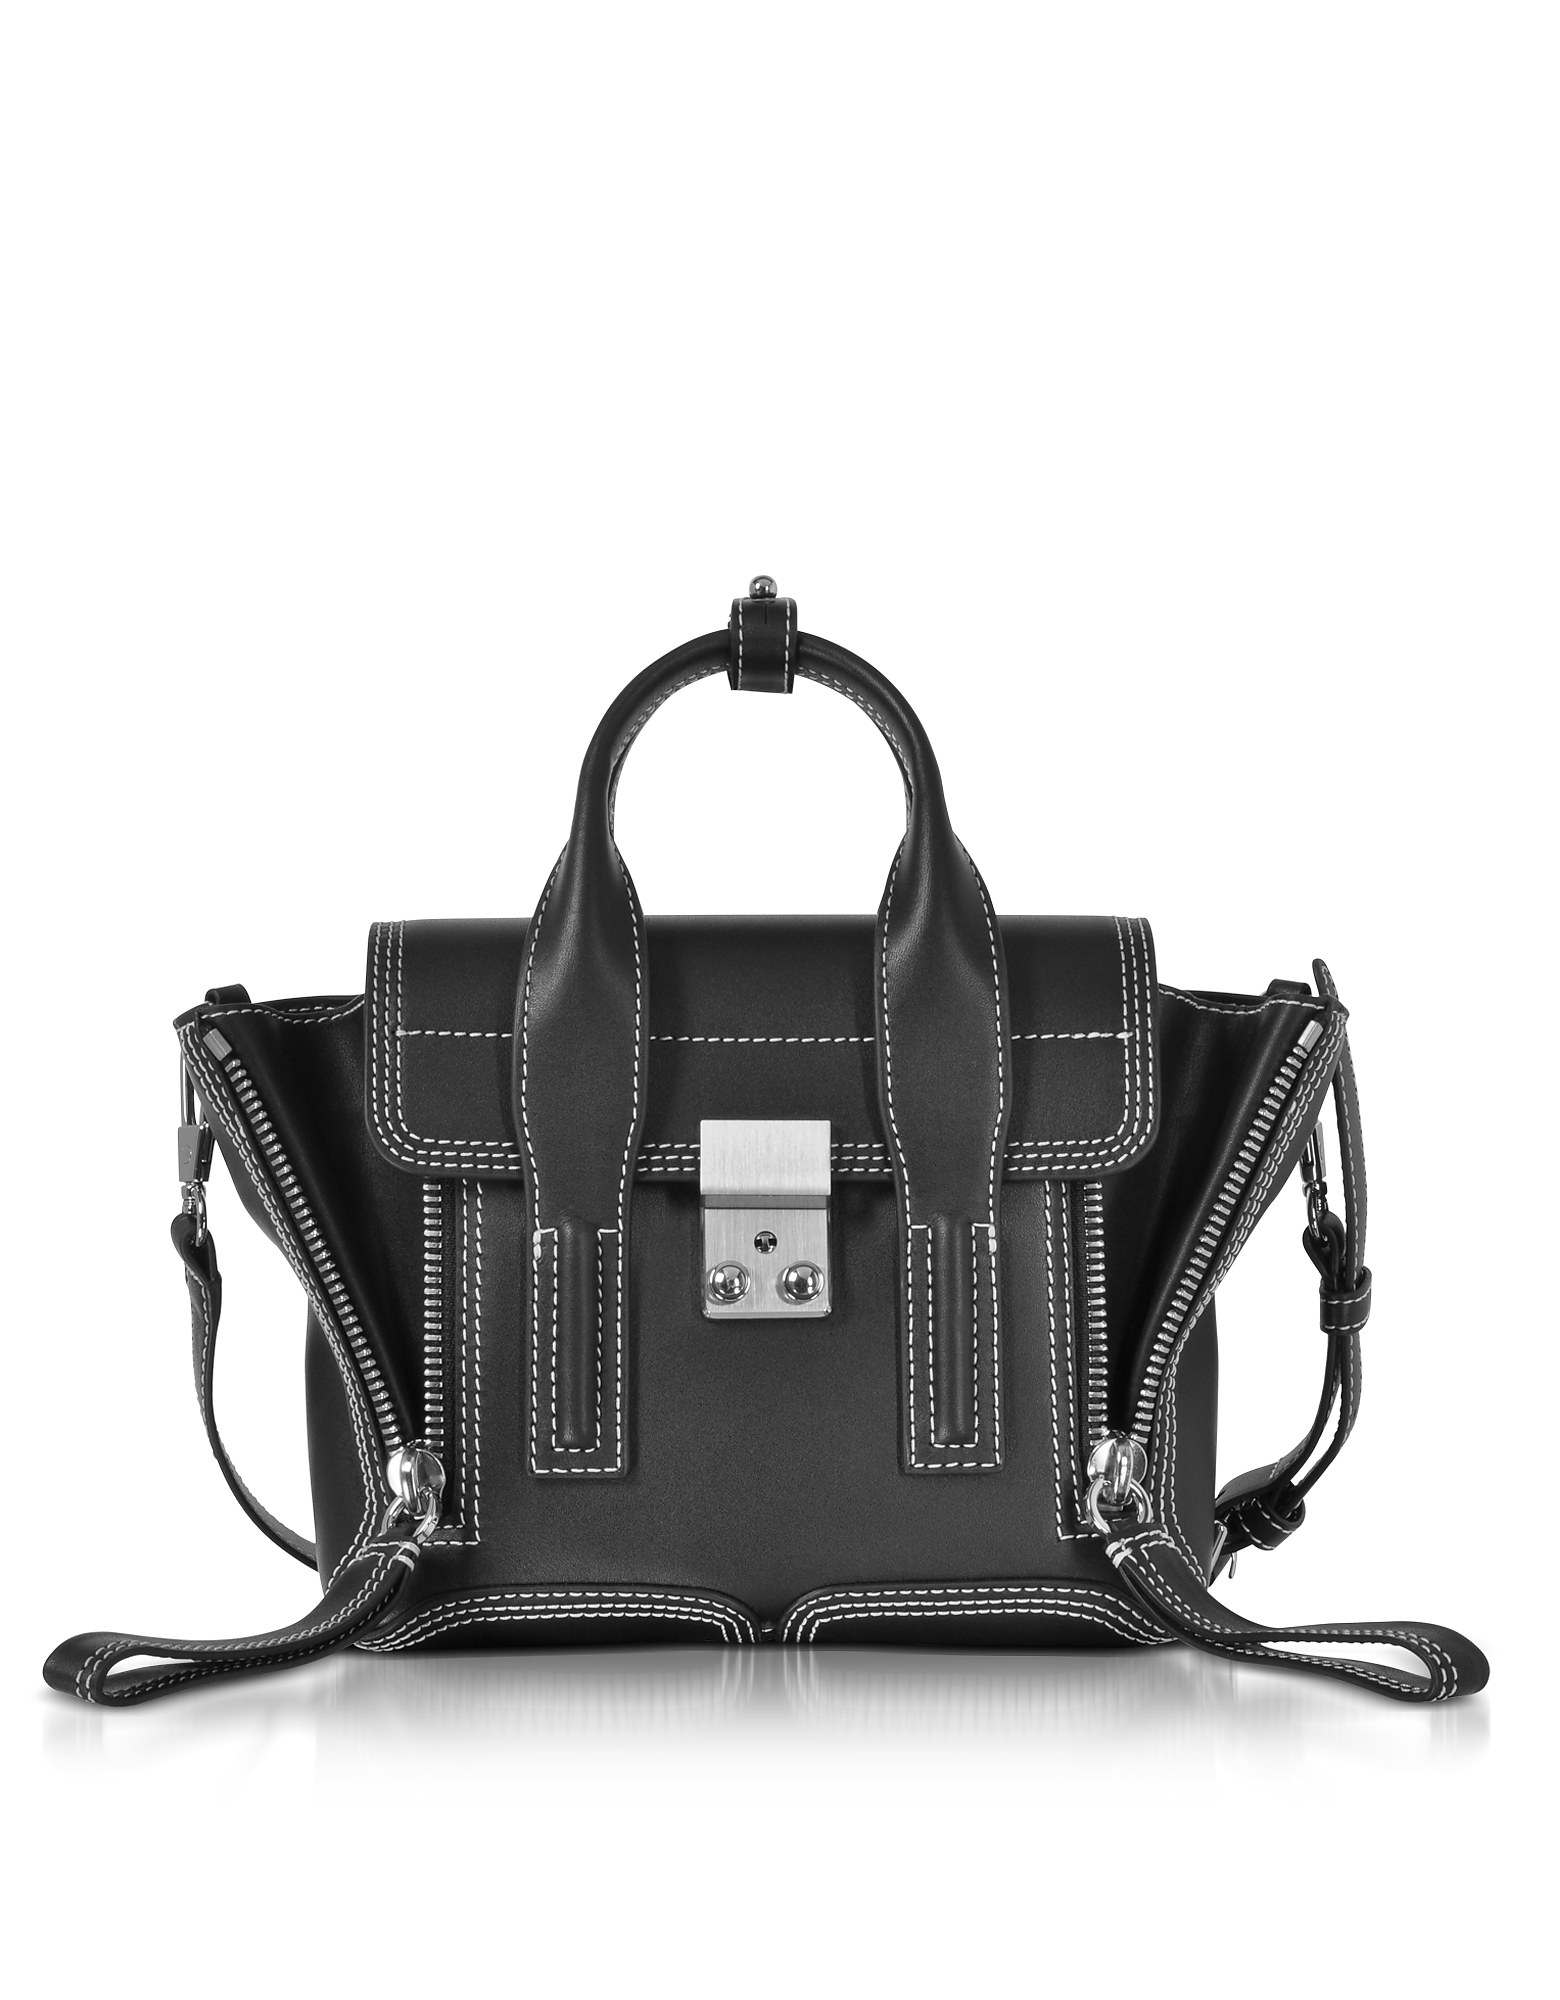 3.1 Phillip Lim Handbags, Pashli Black Leather Mini Satchel Bag